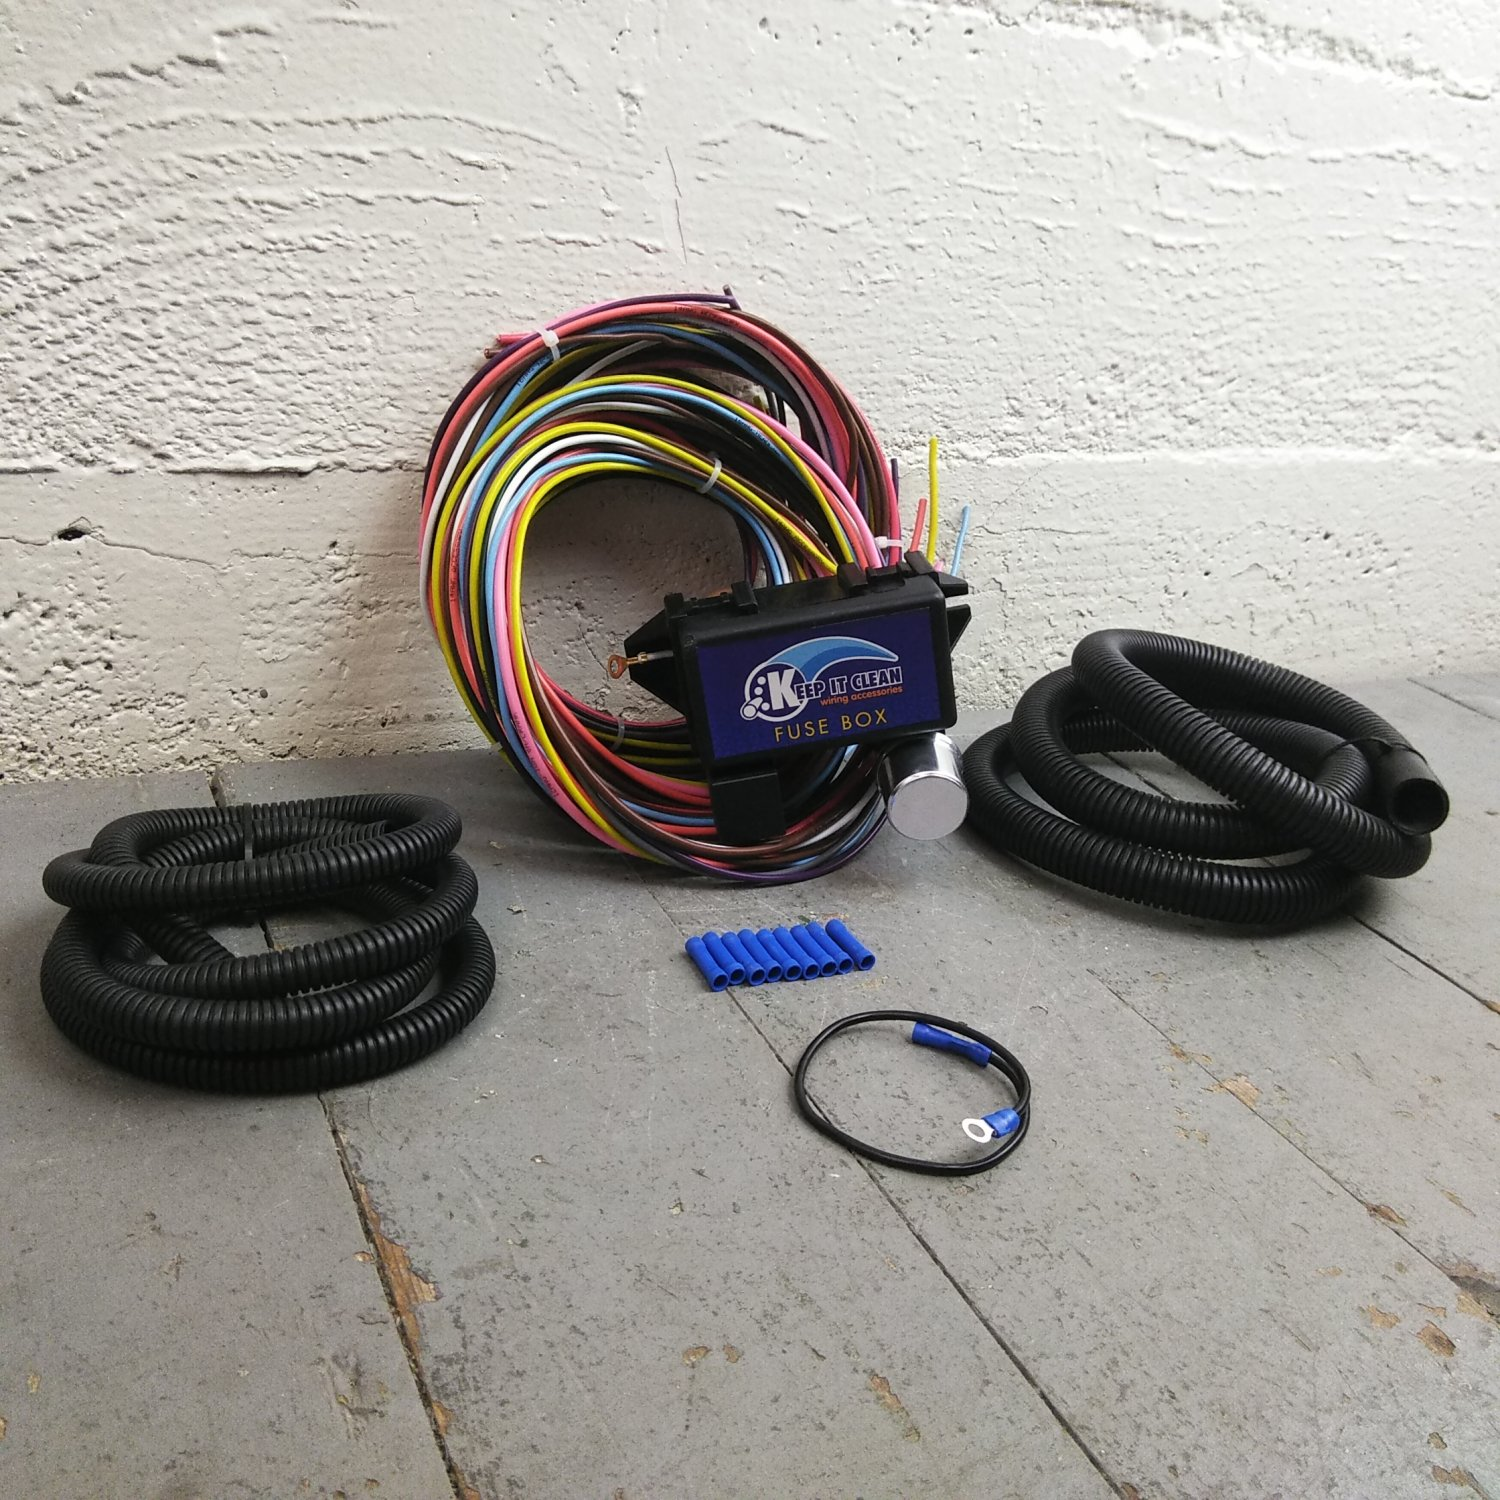 hight resolution of antique car or truck ultra pro wire harness system 12 fuse color wantique car or truck